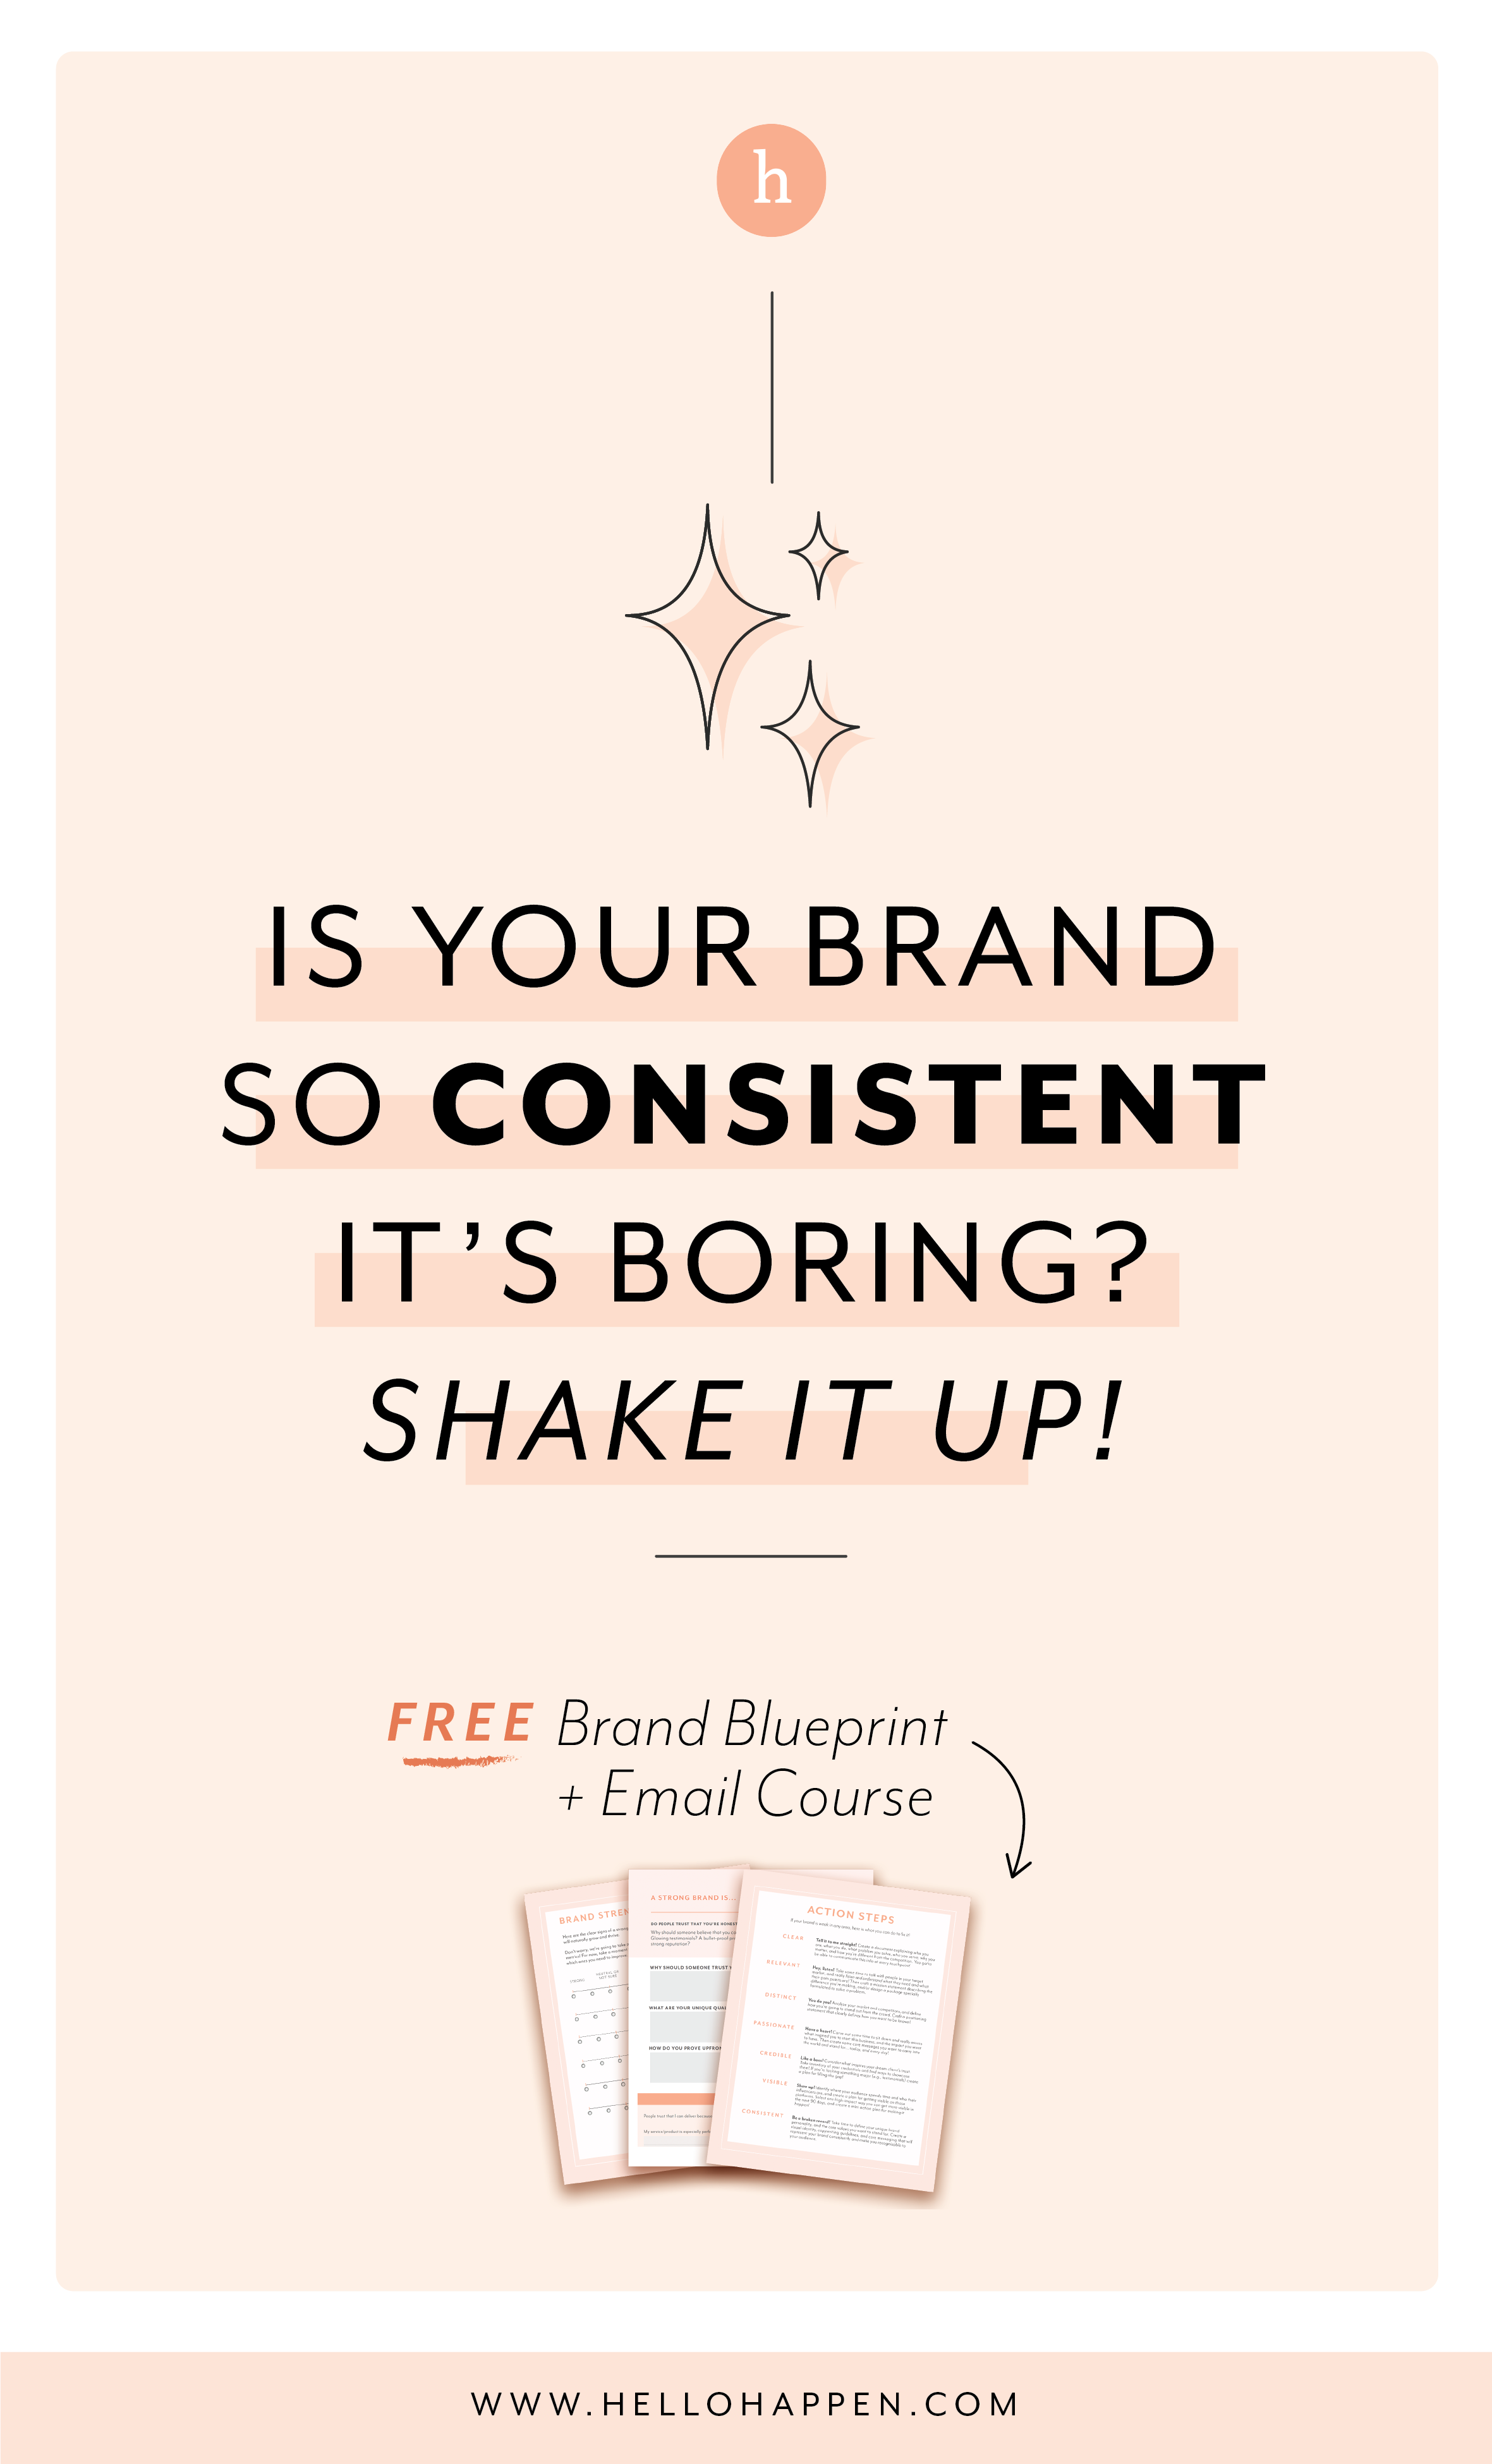 Is your brand so consistent it's BORING? There's a fine line to walk to stay on-brand while keeping things fresh. Read the post, plus download the free Brand Blueprint + email course. #brandstrategy // Hellohappen Brand Strategy